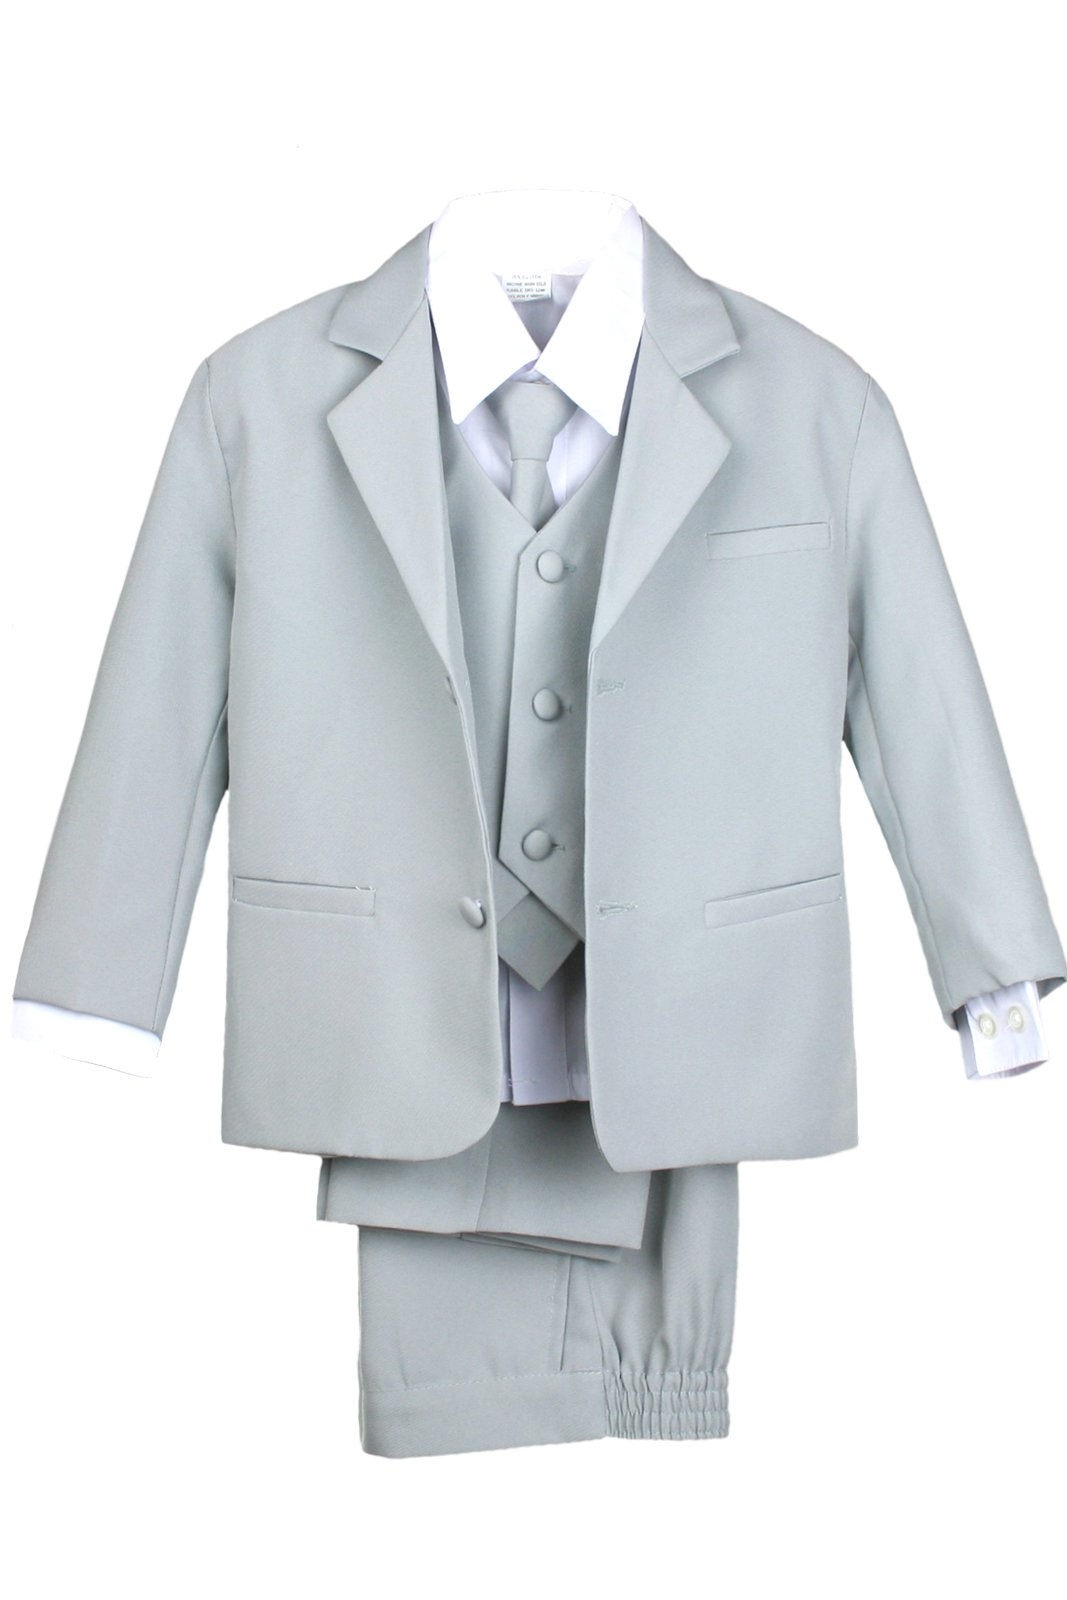 Amazon.com: Leadertux 5pc Boys Formal Wedding Light Gray Vest ...